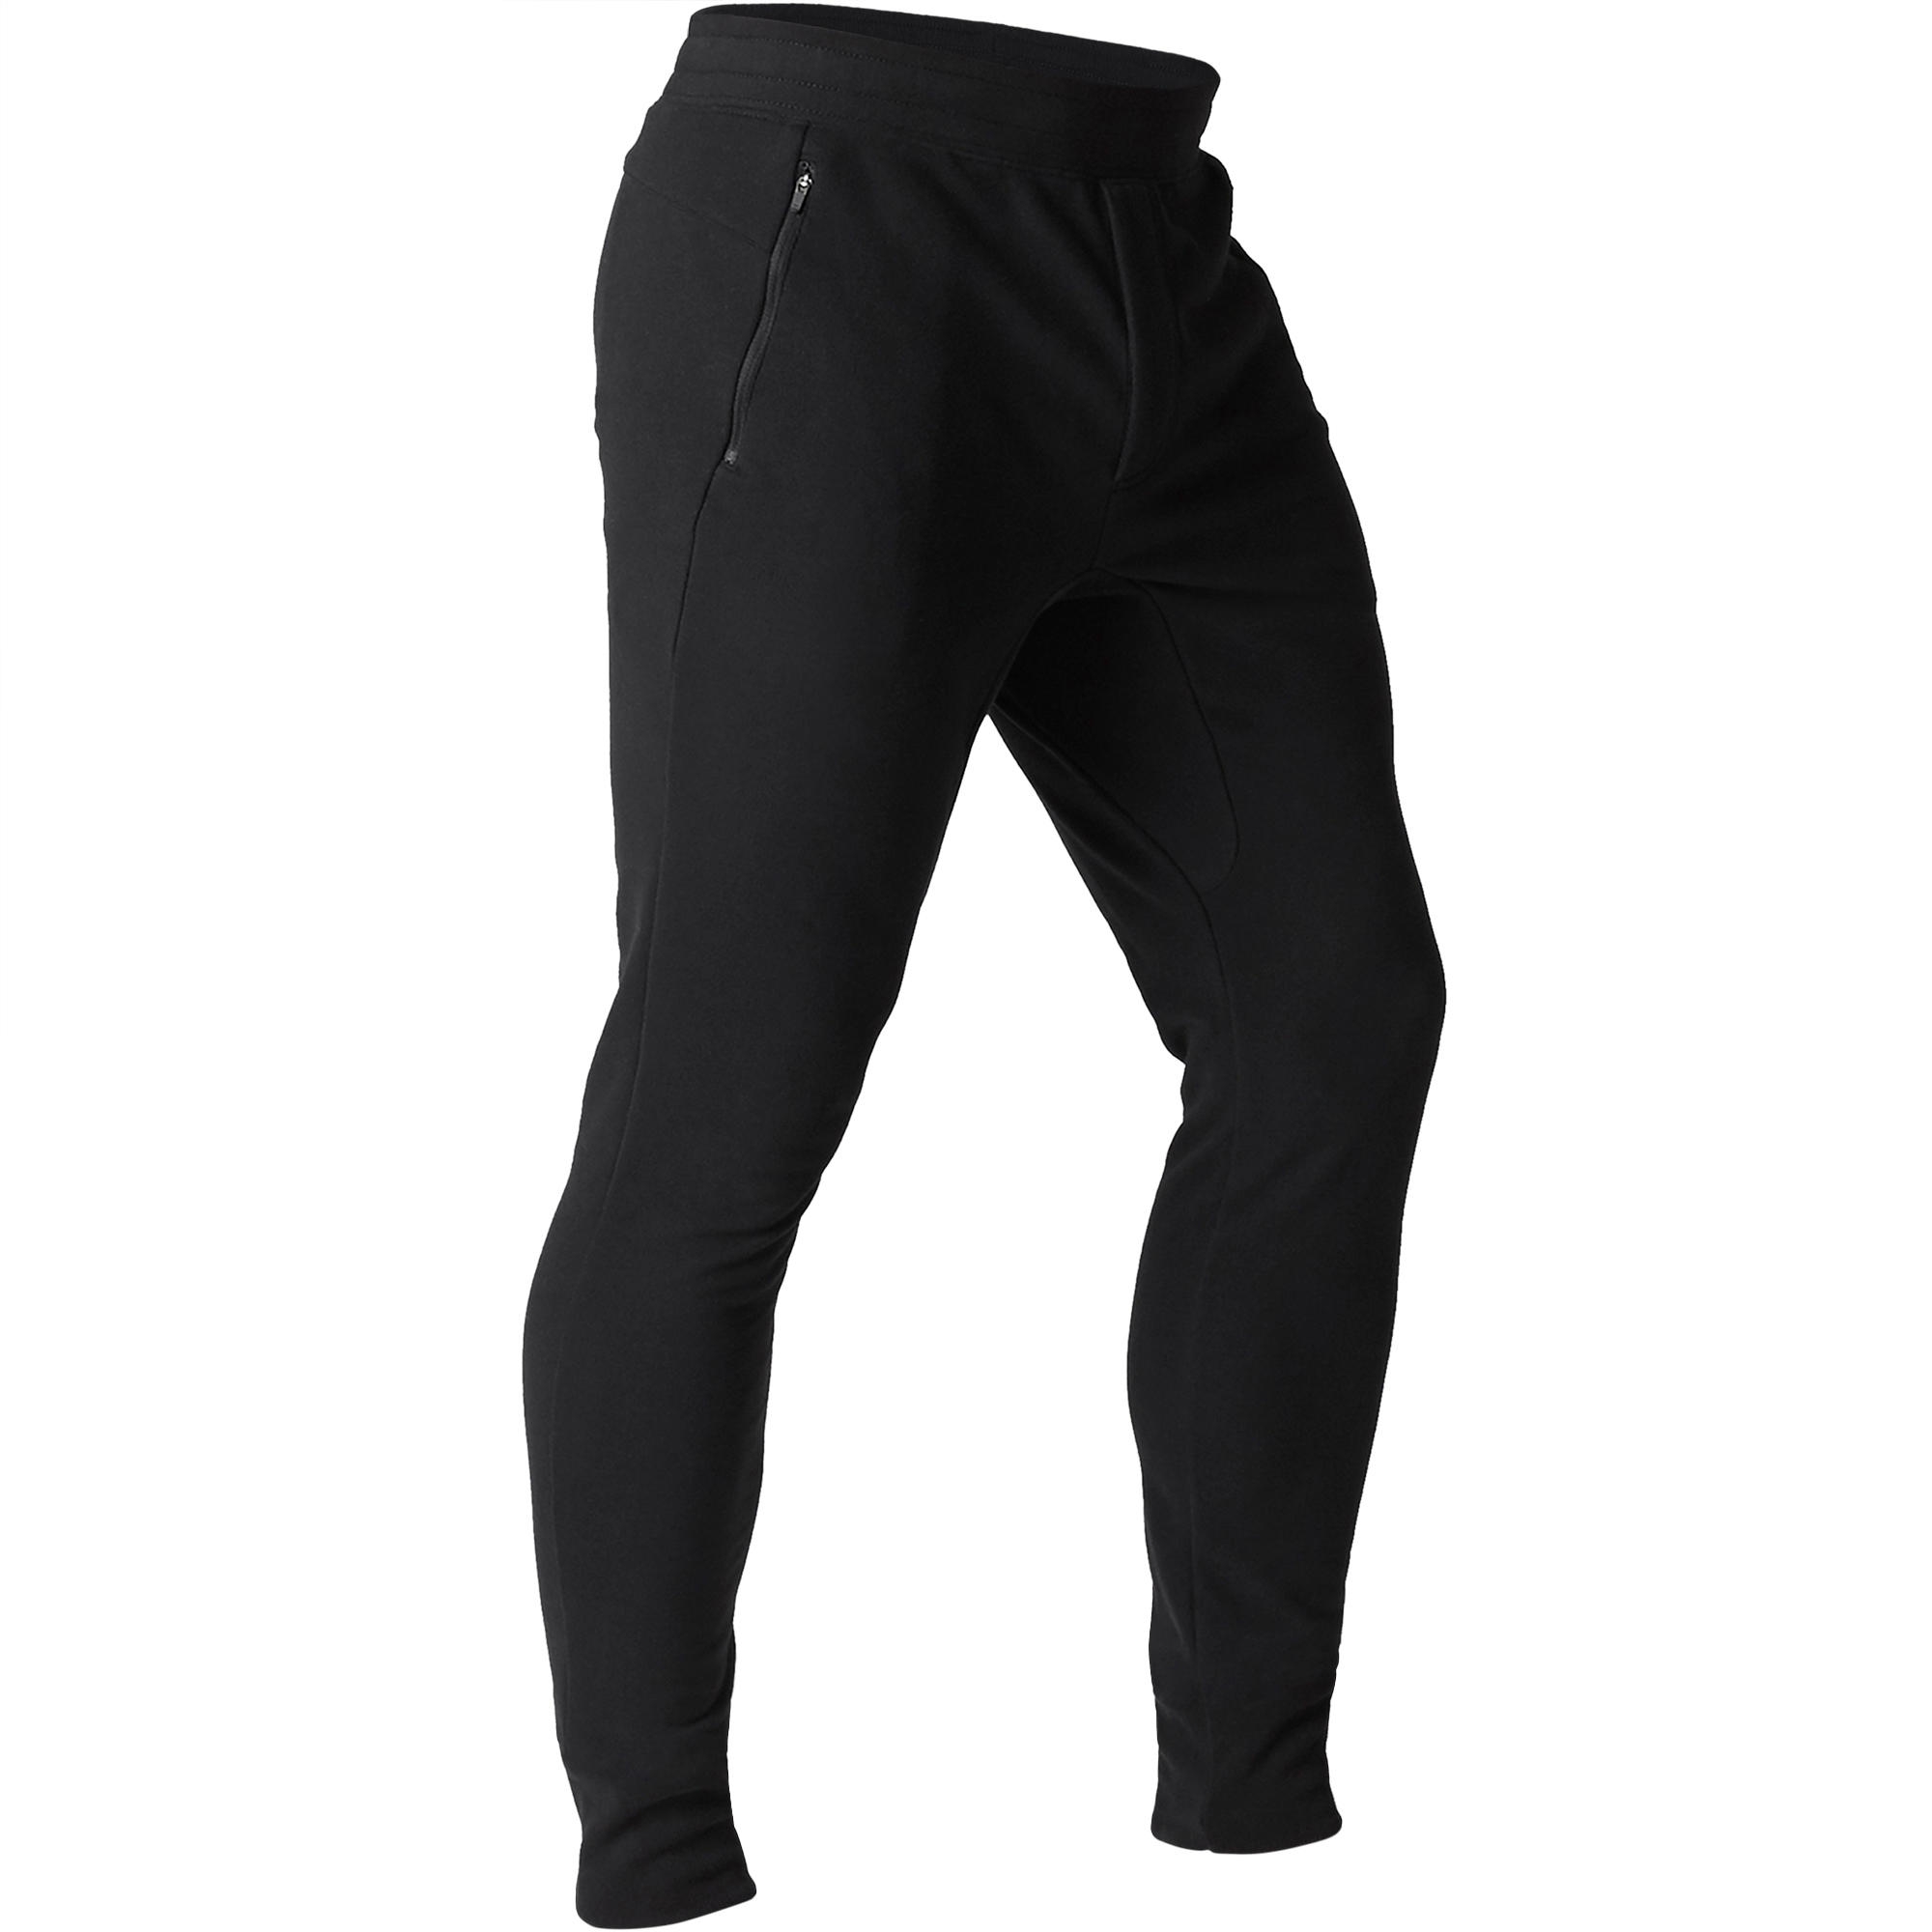 500 Skinny-Fit Zipper Gym Stretching Bottoms - Black